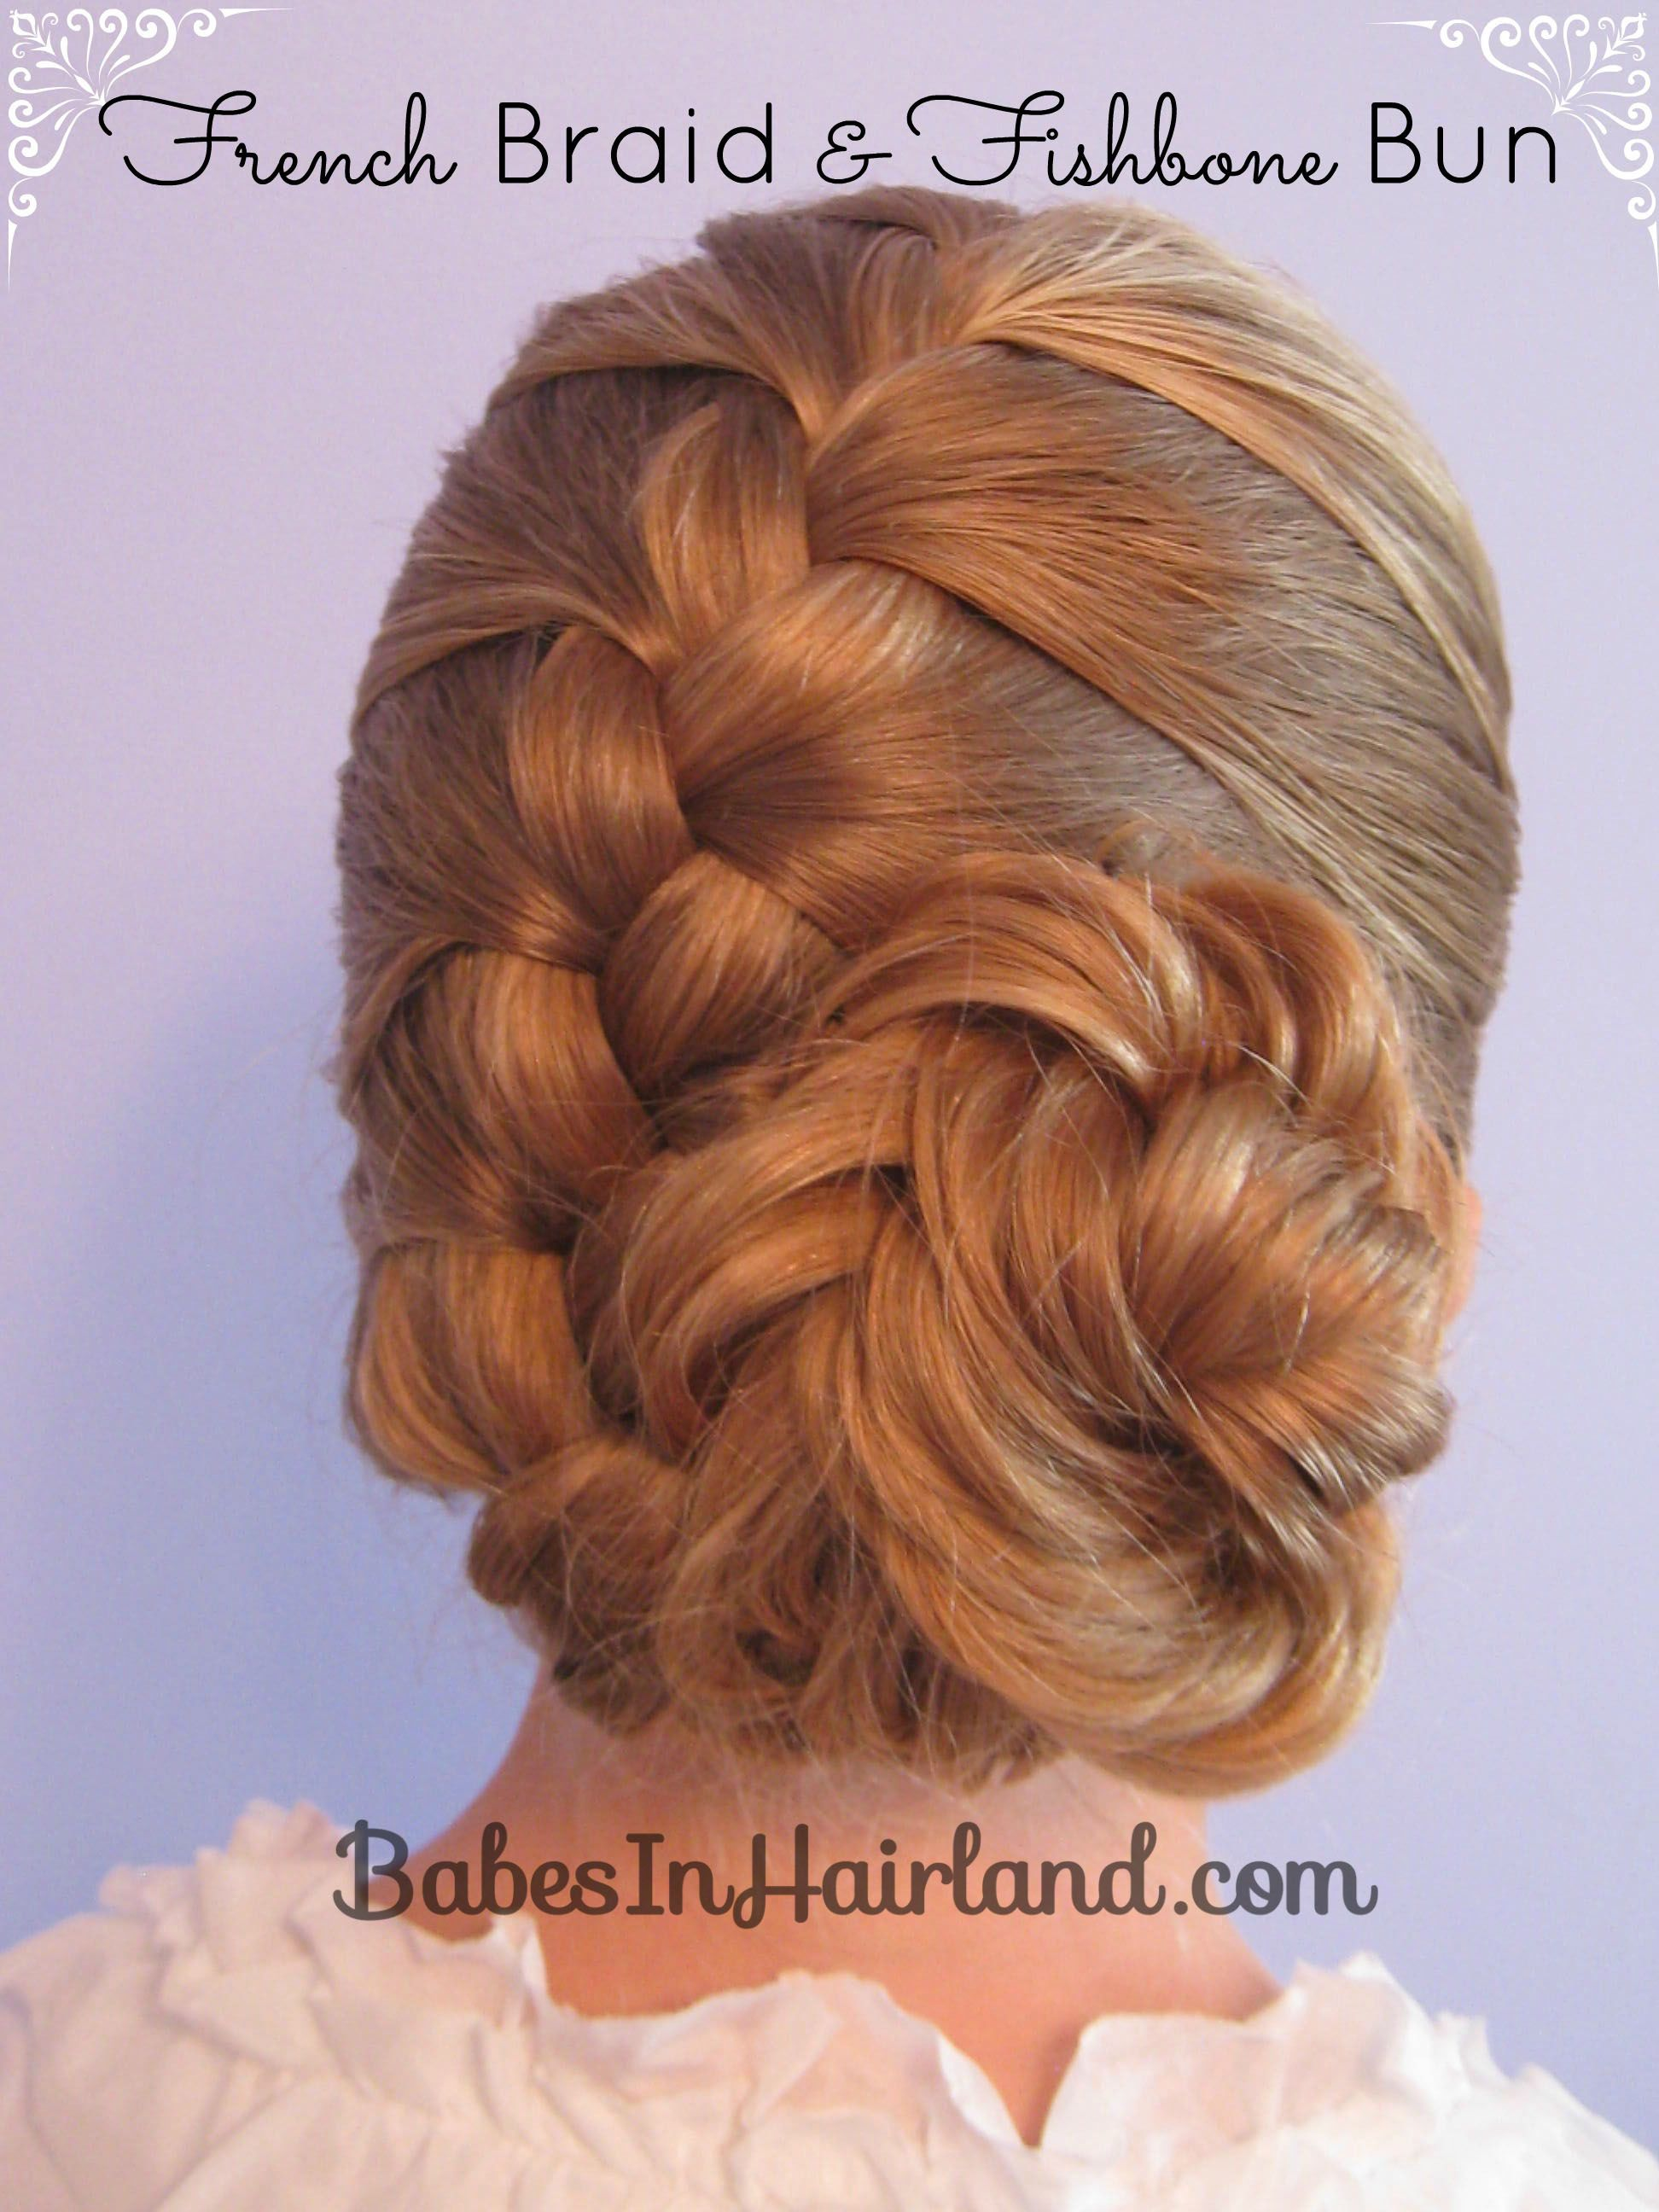 French braid and fishbone bun wedding ideas pinterest french